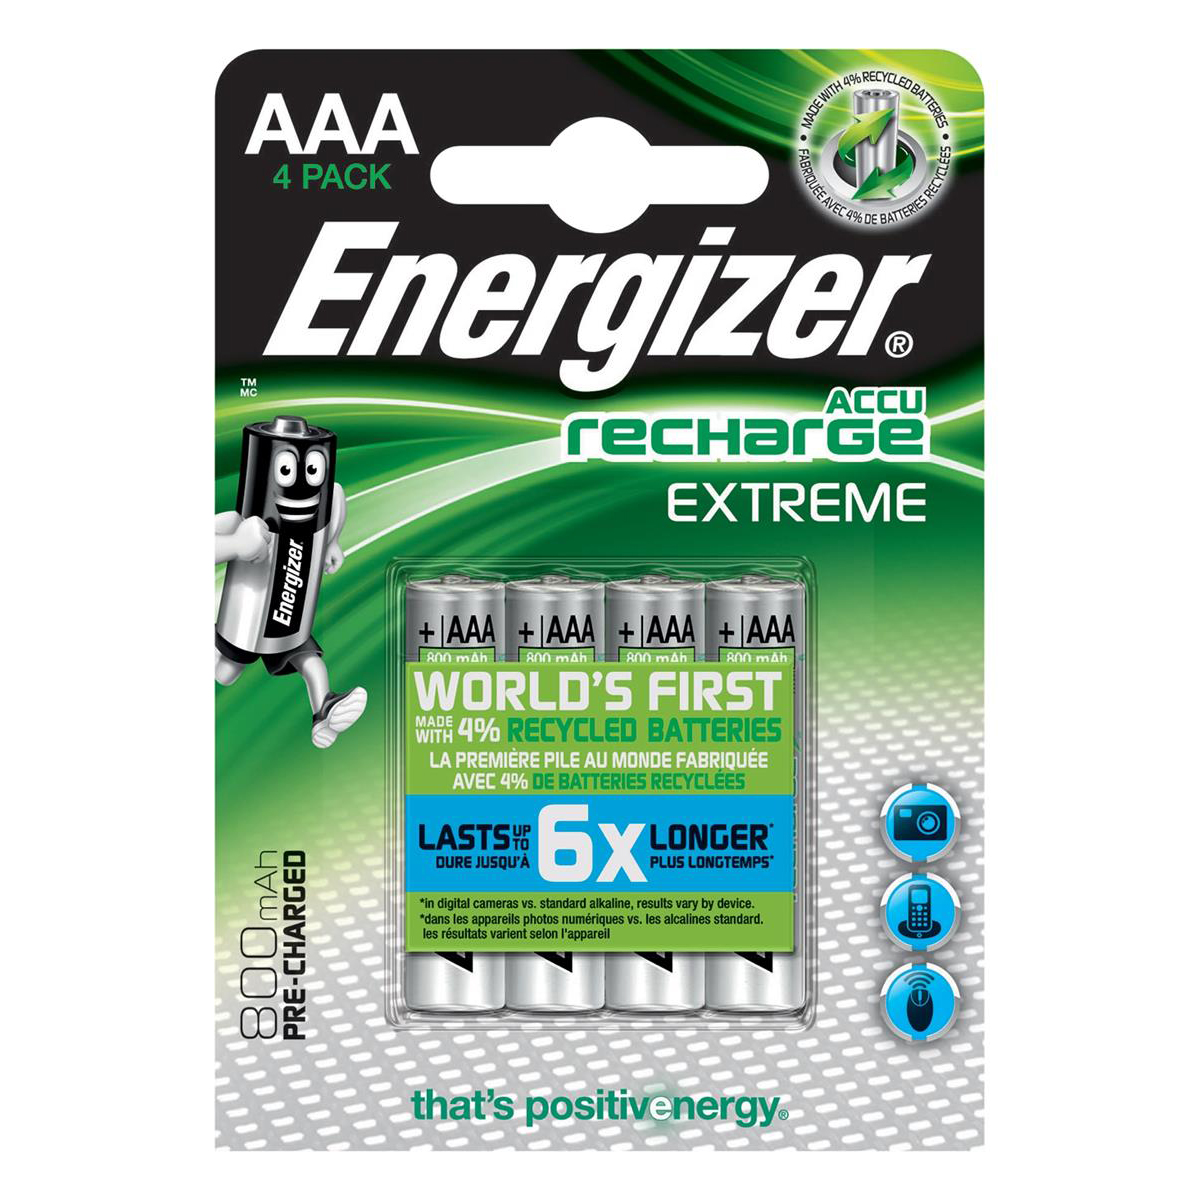 Energizer Battery Rechargeable Advanced NiMH Capacity 800mAh LR03 1.2V AAA Ref E300624400 Pack 4